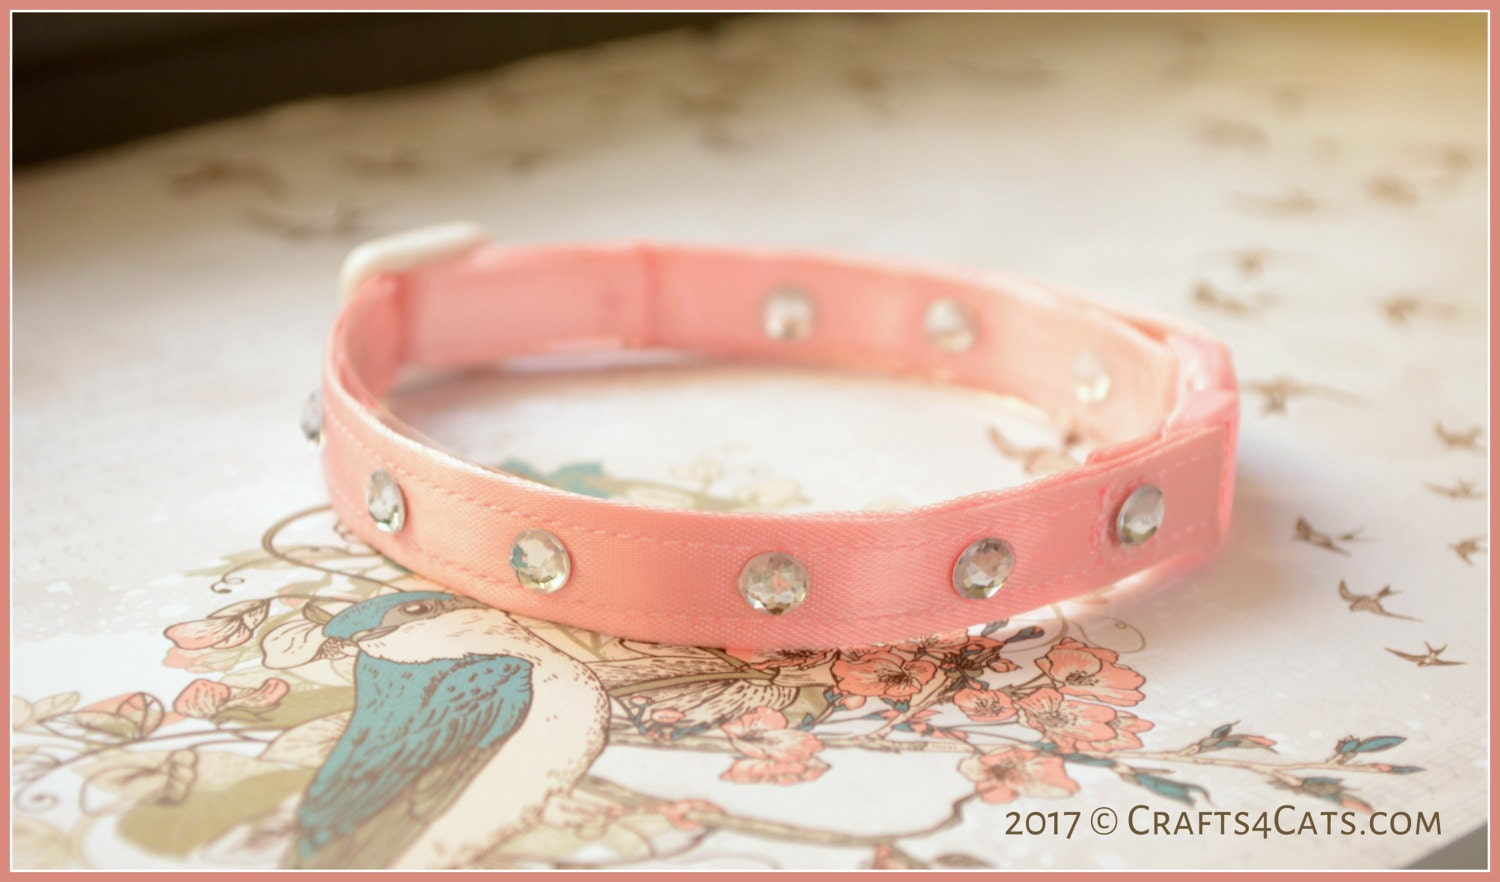 Fancy cat collar - Satin pink with rhinestones.